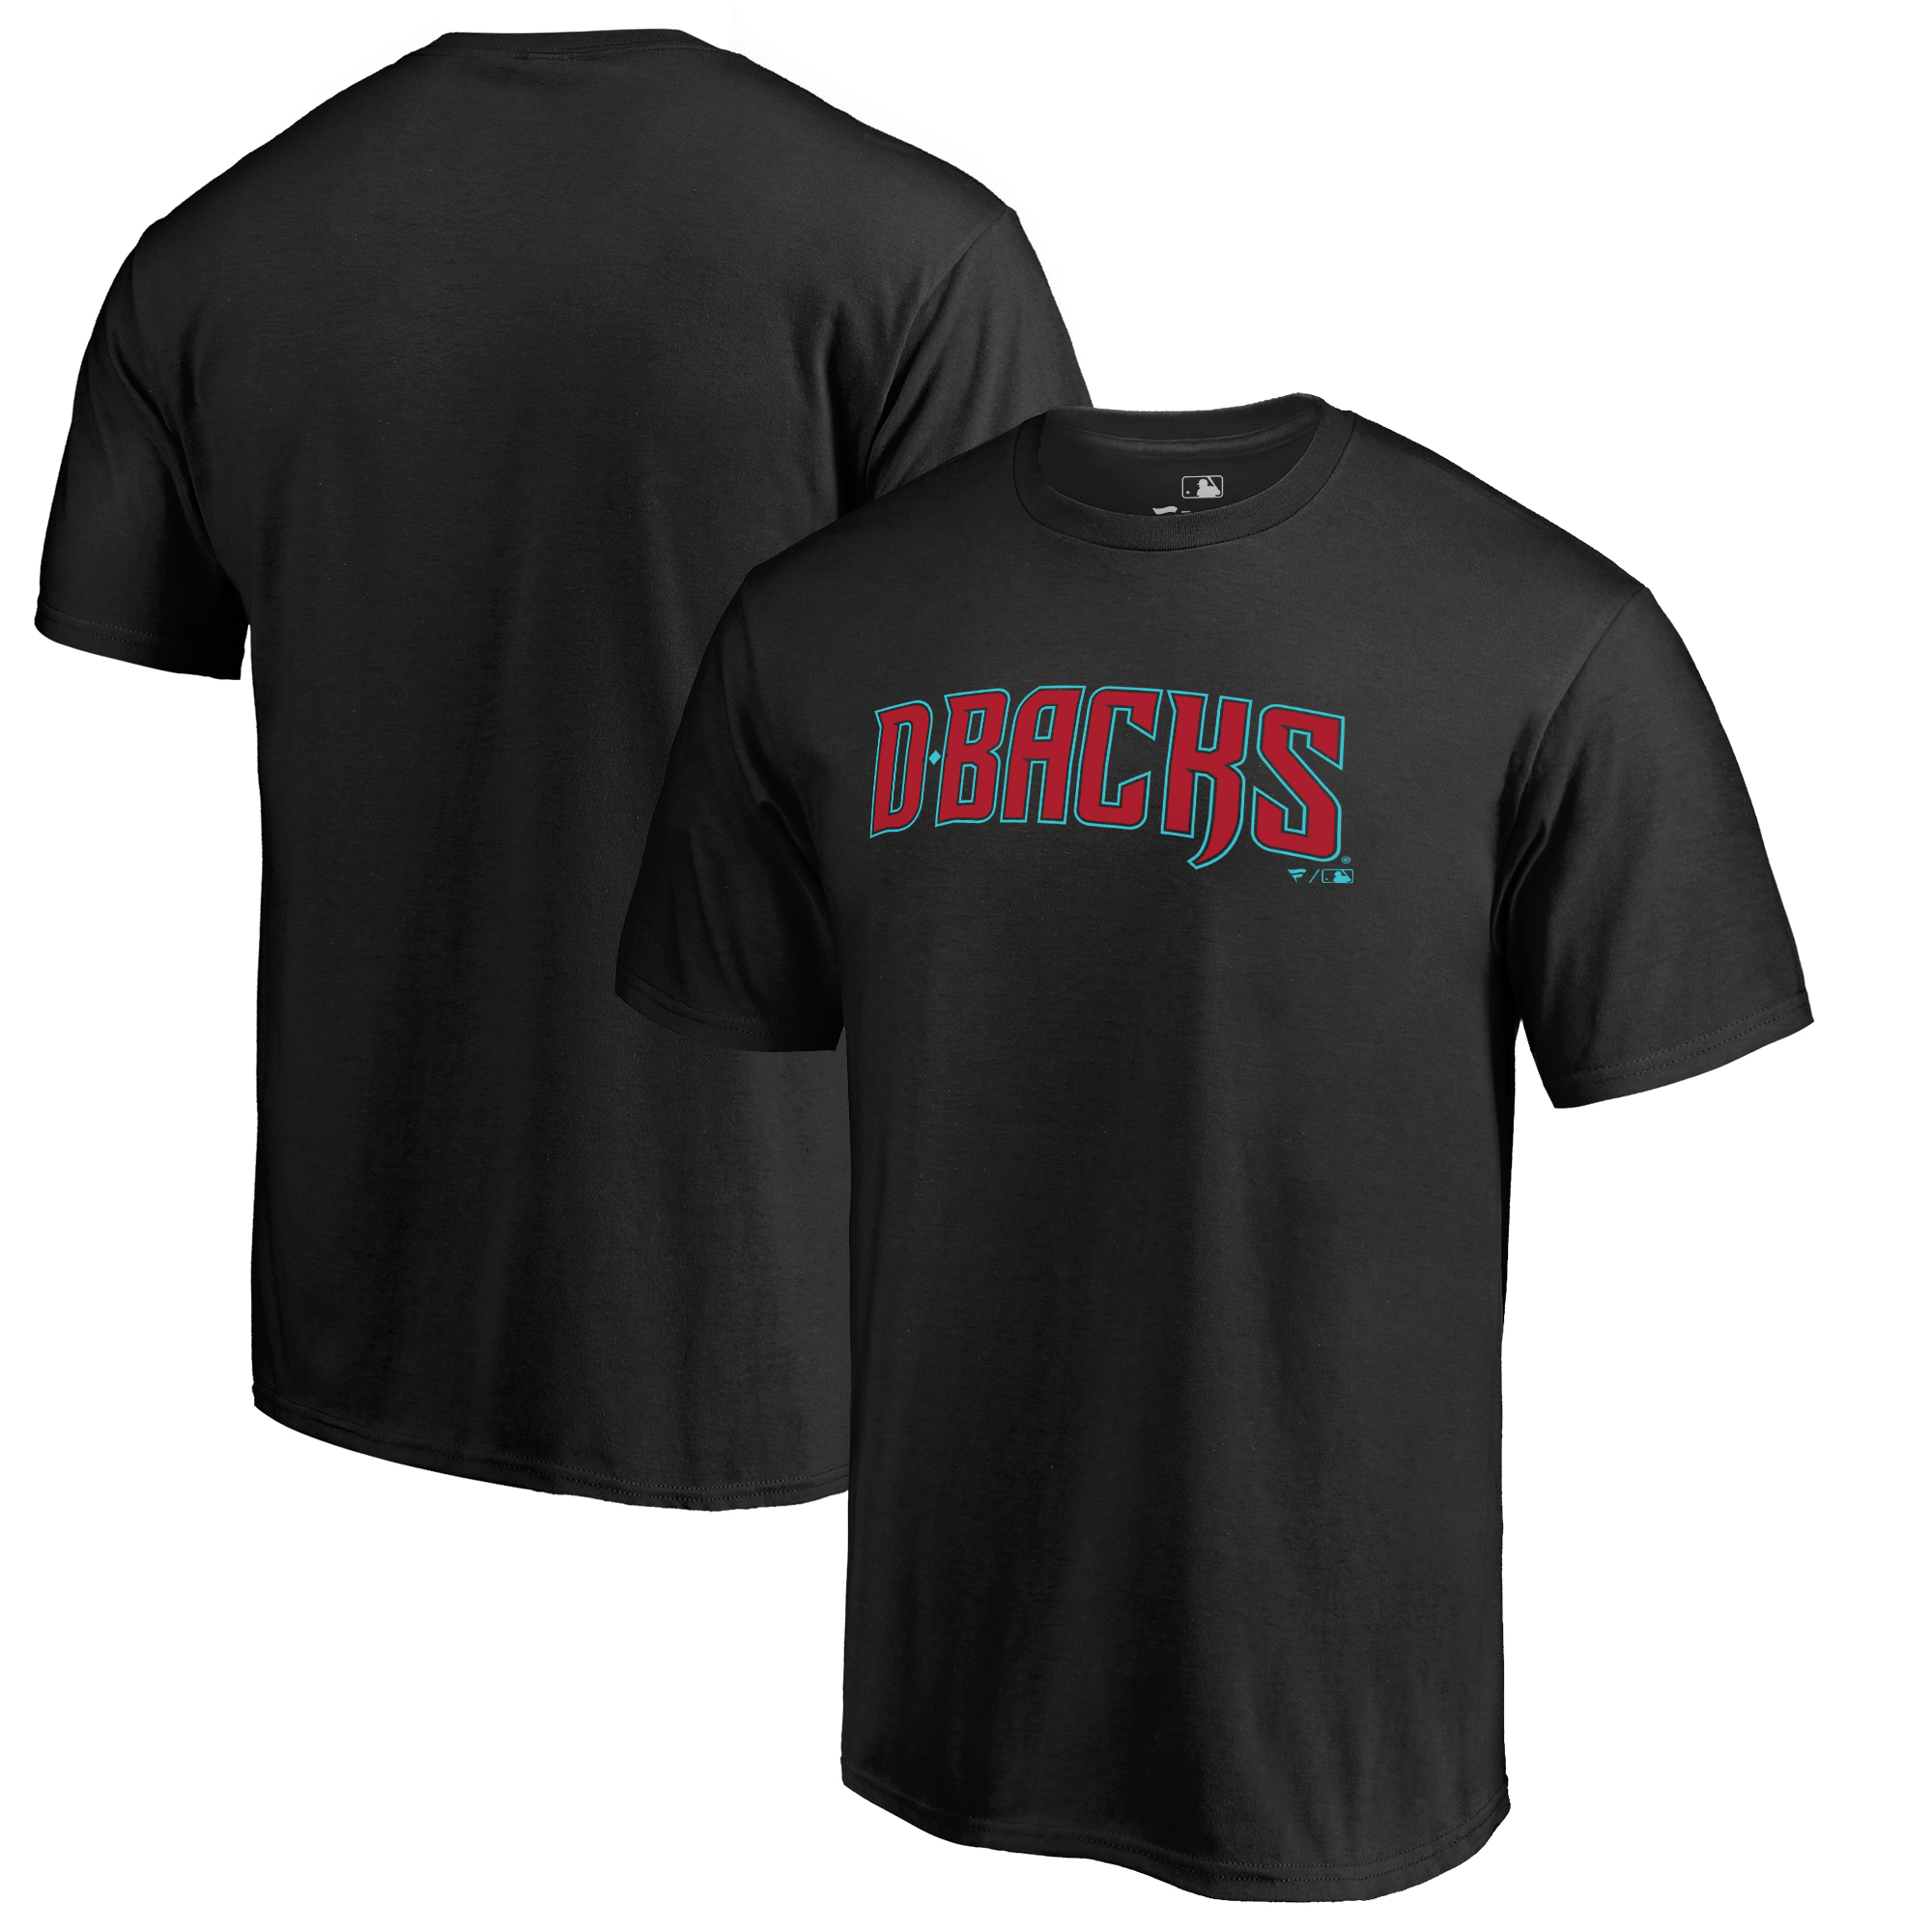 Arizona Diamondbacks Fanatics Branded Team Wordmark T-Shirt - Black